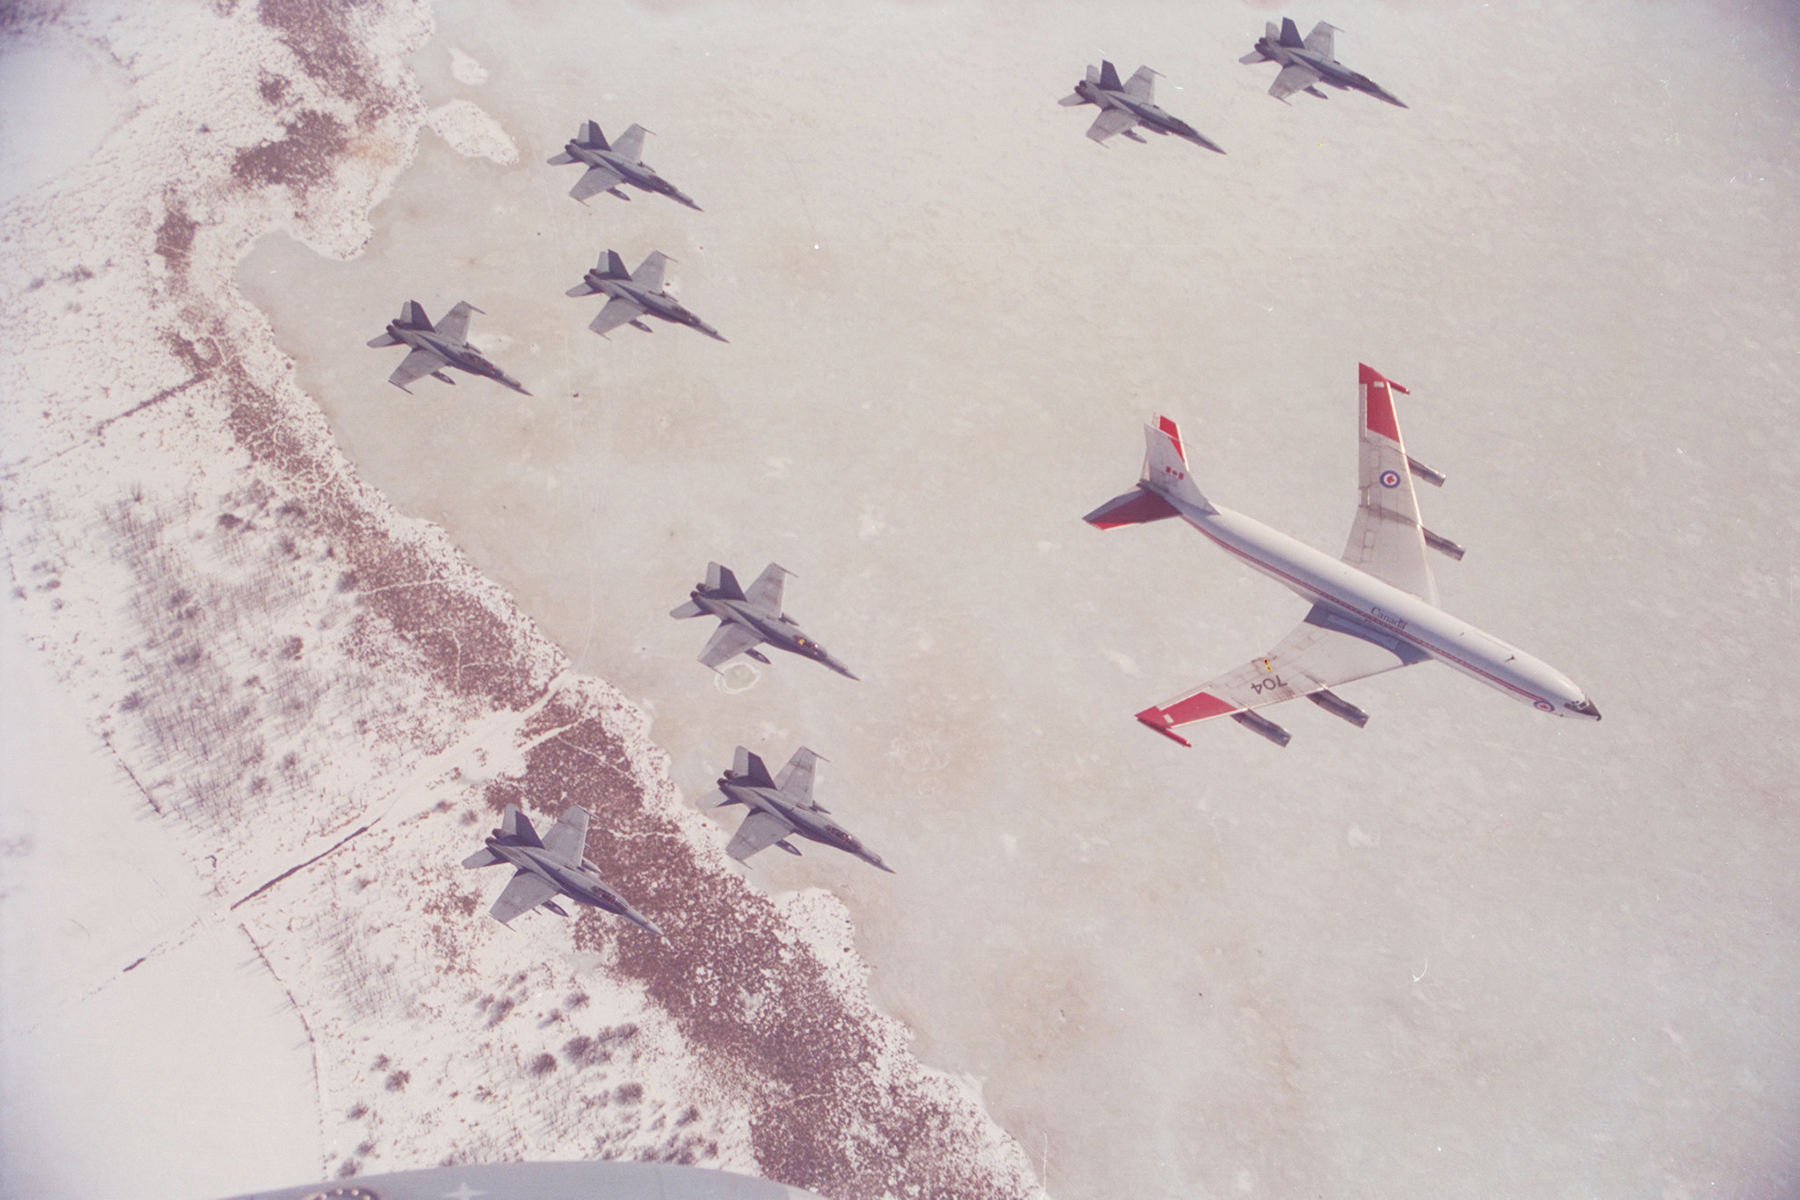 Upon their return from the first Gulf War (1990-1991), Canadian Armed Forces CF-188 Hornet fighters, led by a CC-137 (Boeing 707) aircraft transporting groundcrew and support personnel, approach downtown Ottawa, Ontario, over the bank of the frozen Ottawa River, in February 1991 to carry out a flyover marking their successful participation in Operation Desert Storm. PHOTO: Sergeant Norm Marion